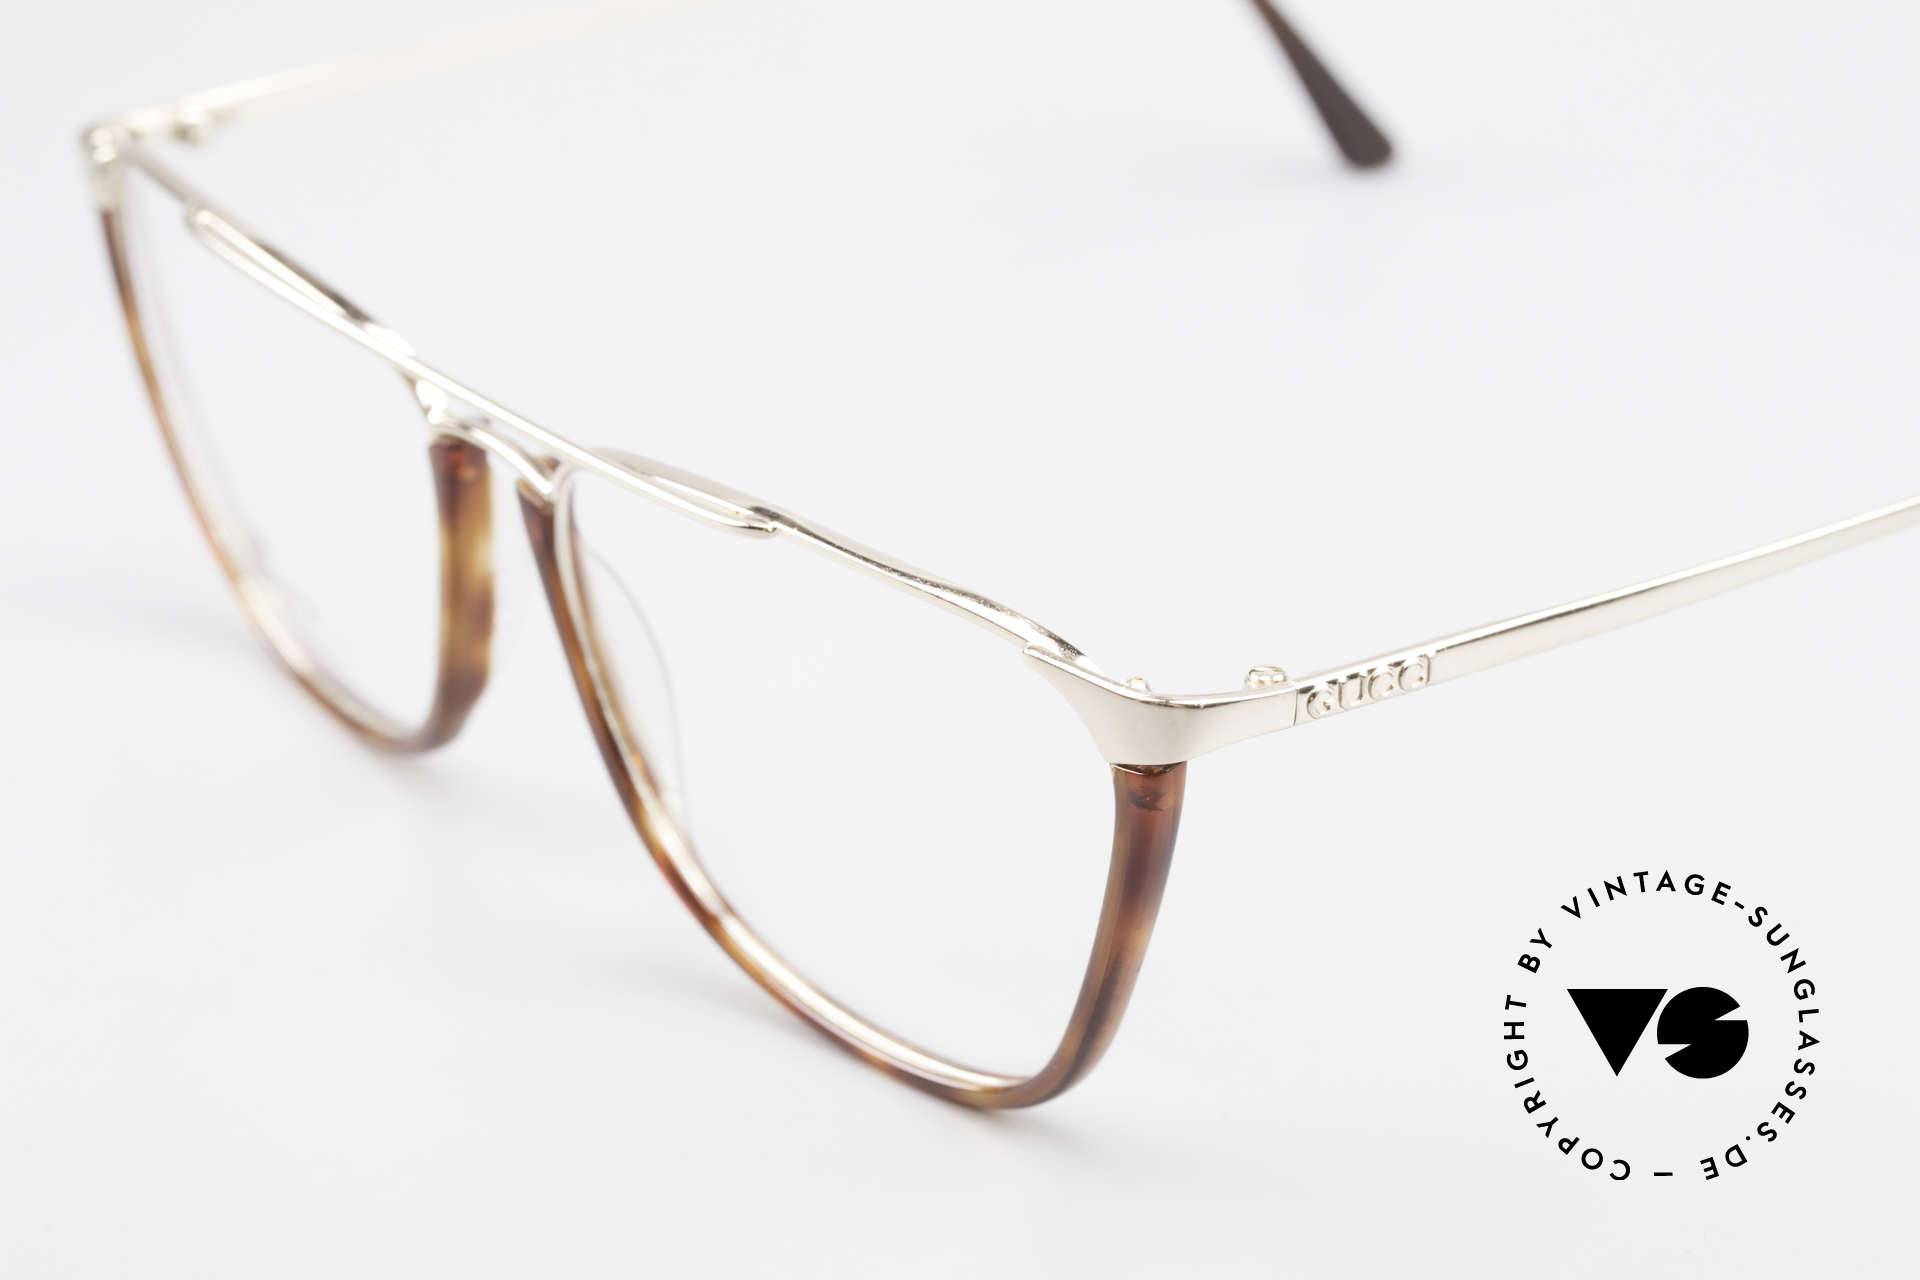 Gucci 1308 90's Designer Eyeglass-Frame, high-end quality & 1. class wearing comfort, Made for Men and Women